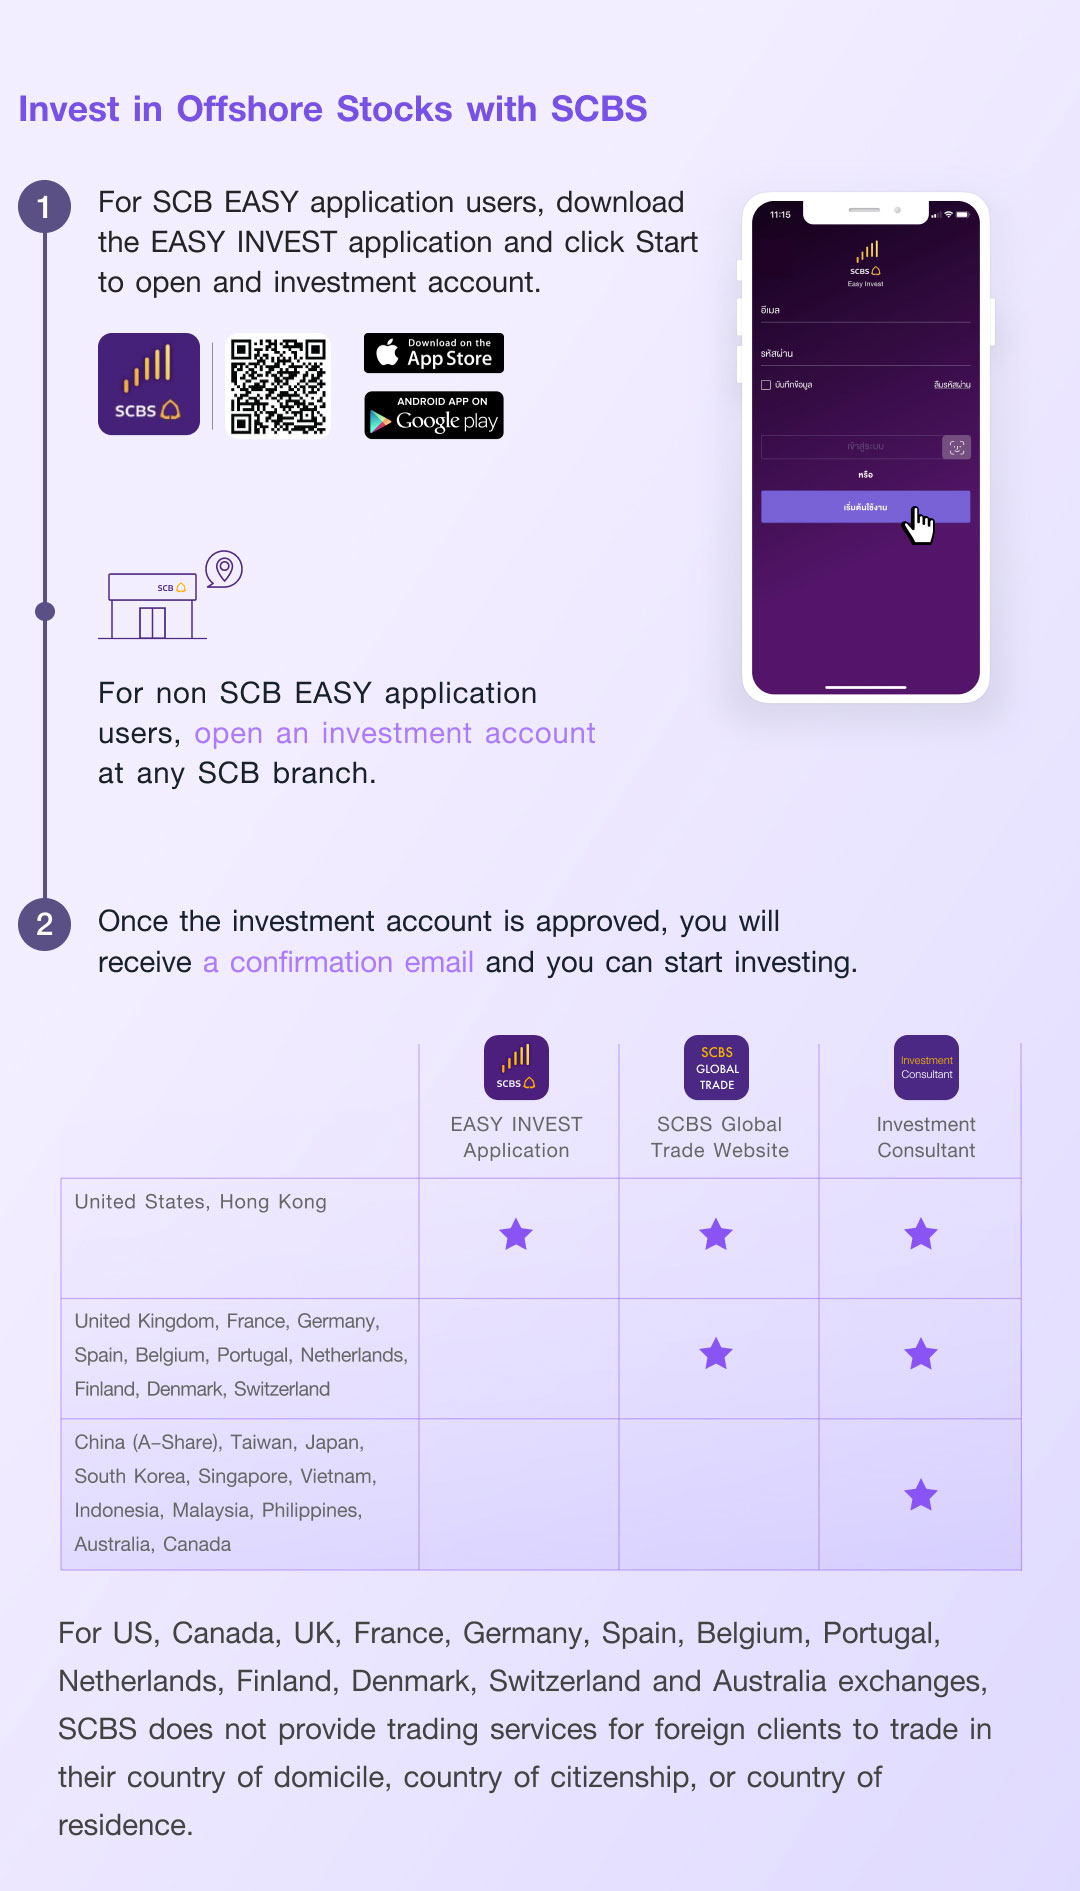 For SCB EASY application users, download the EASY INVEST application and click Start to open and investment account. Once the investment account is approved, you will receive a confirmation email and you can start investing via EASY INVEST application, SCBS Global Trade website, or your investment consultant.